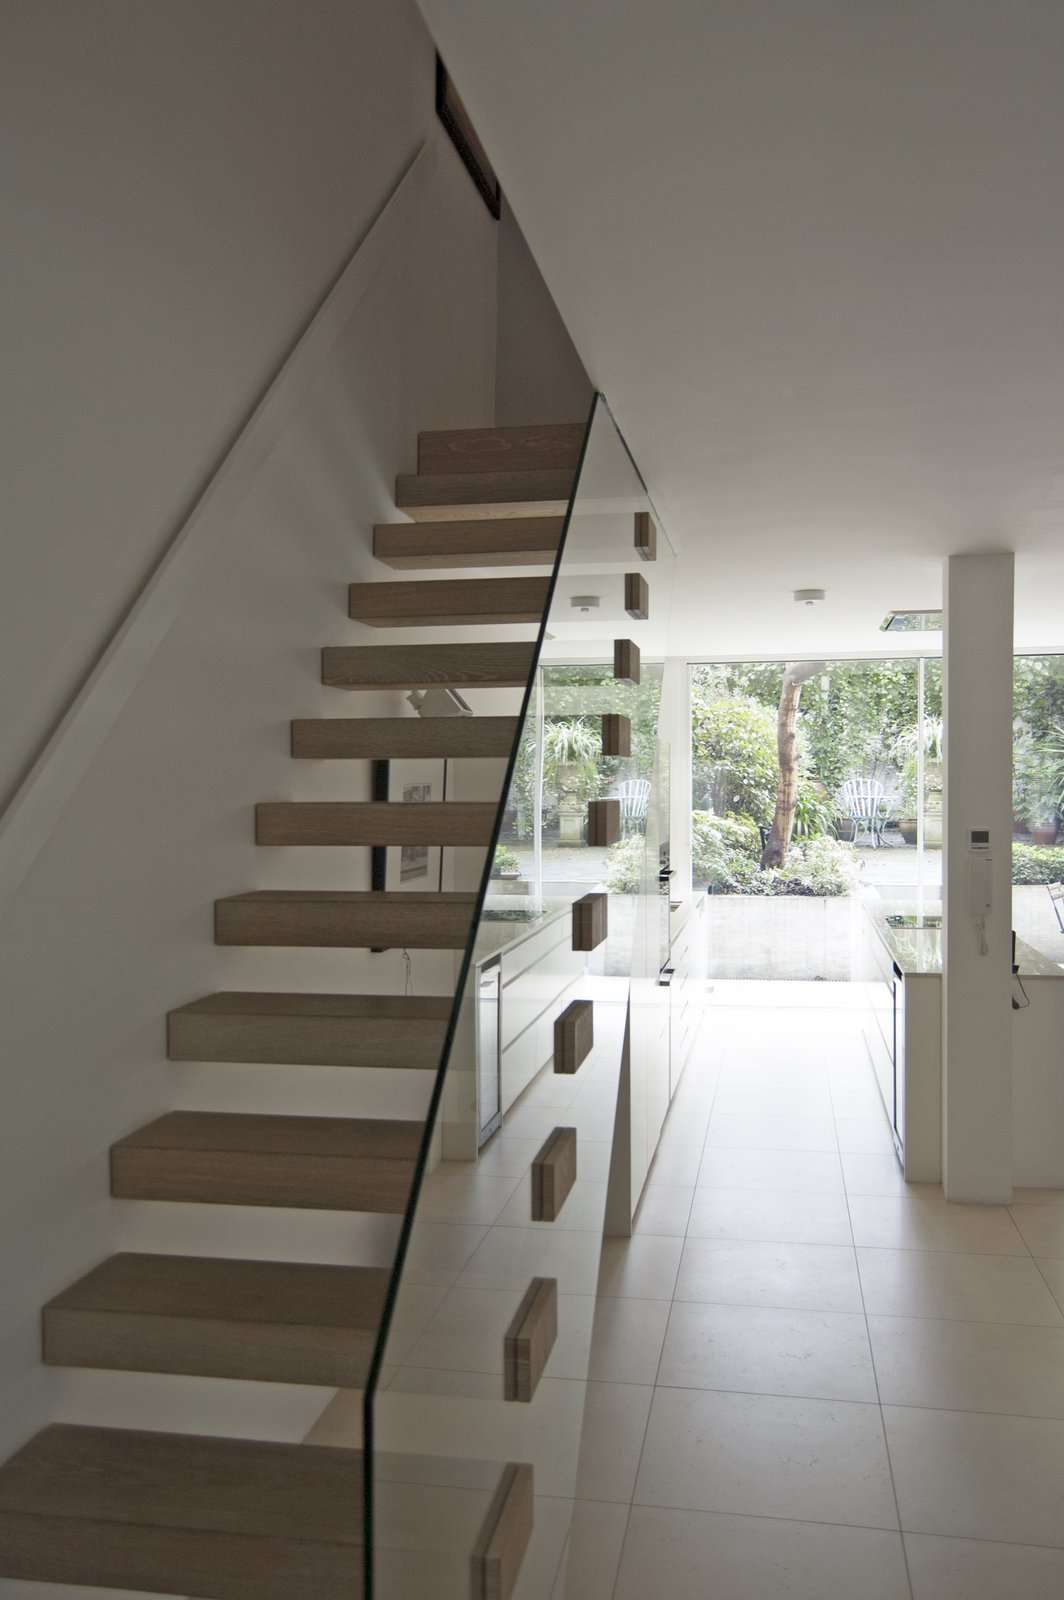 Staircase, Wood Tread, and Glass Railing The modern lower-ground floor connects to the rest of the house via an open-riser timber staircase with clear glass balustrade.  Soupçon Brut by WILLIAM TOZER Associates